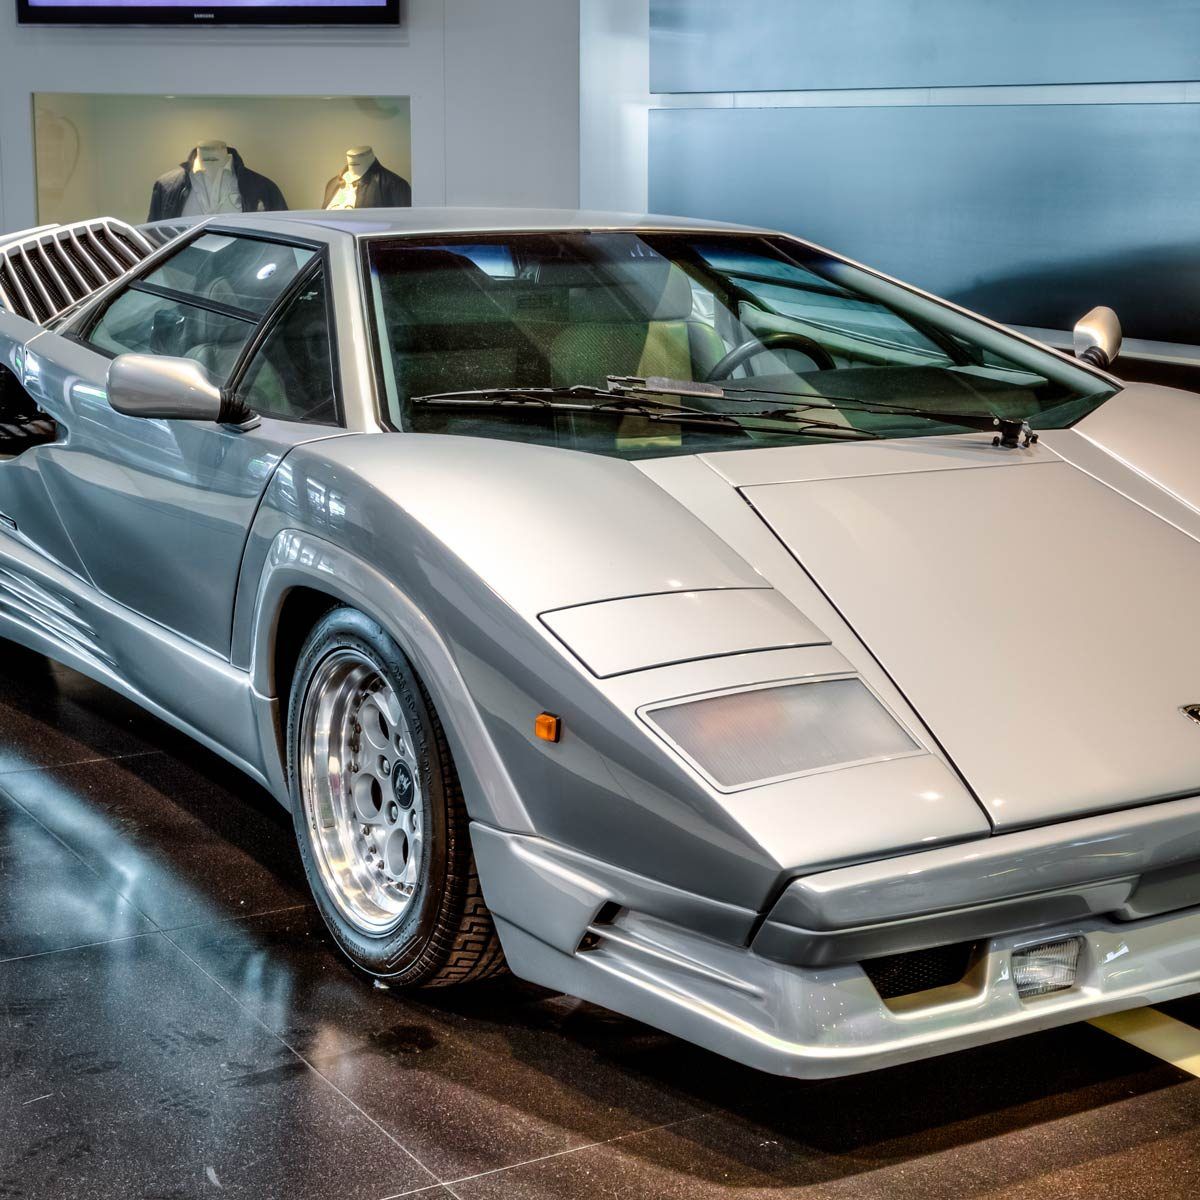 vintage luxury Lamborghini Countach produced from 1974 to 1990 on exposition at Bologna Airport for 100 years history of Lamborghini.